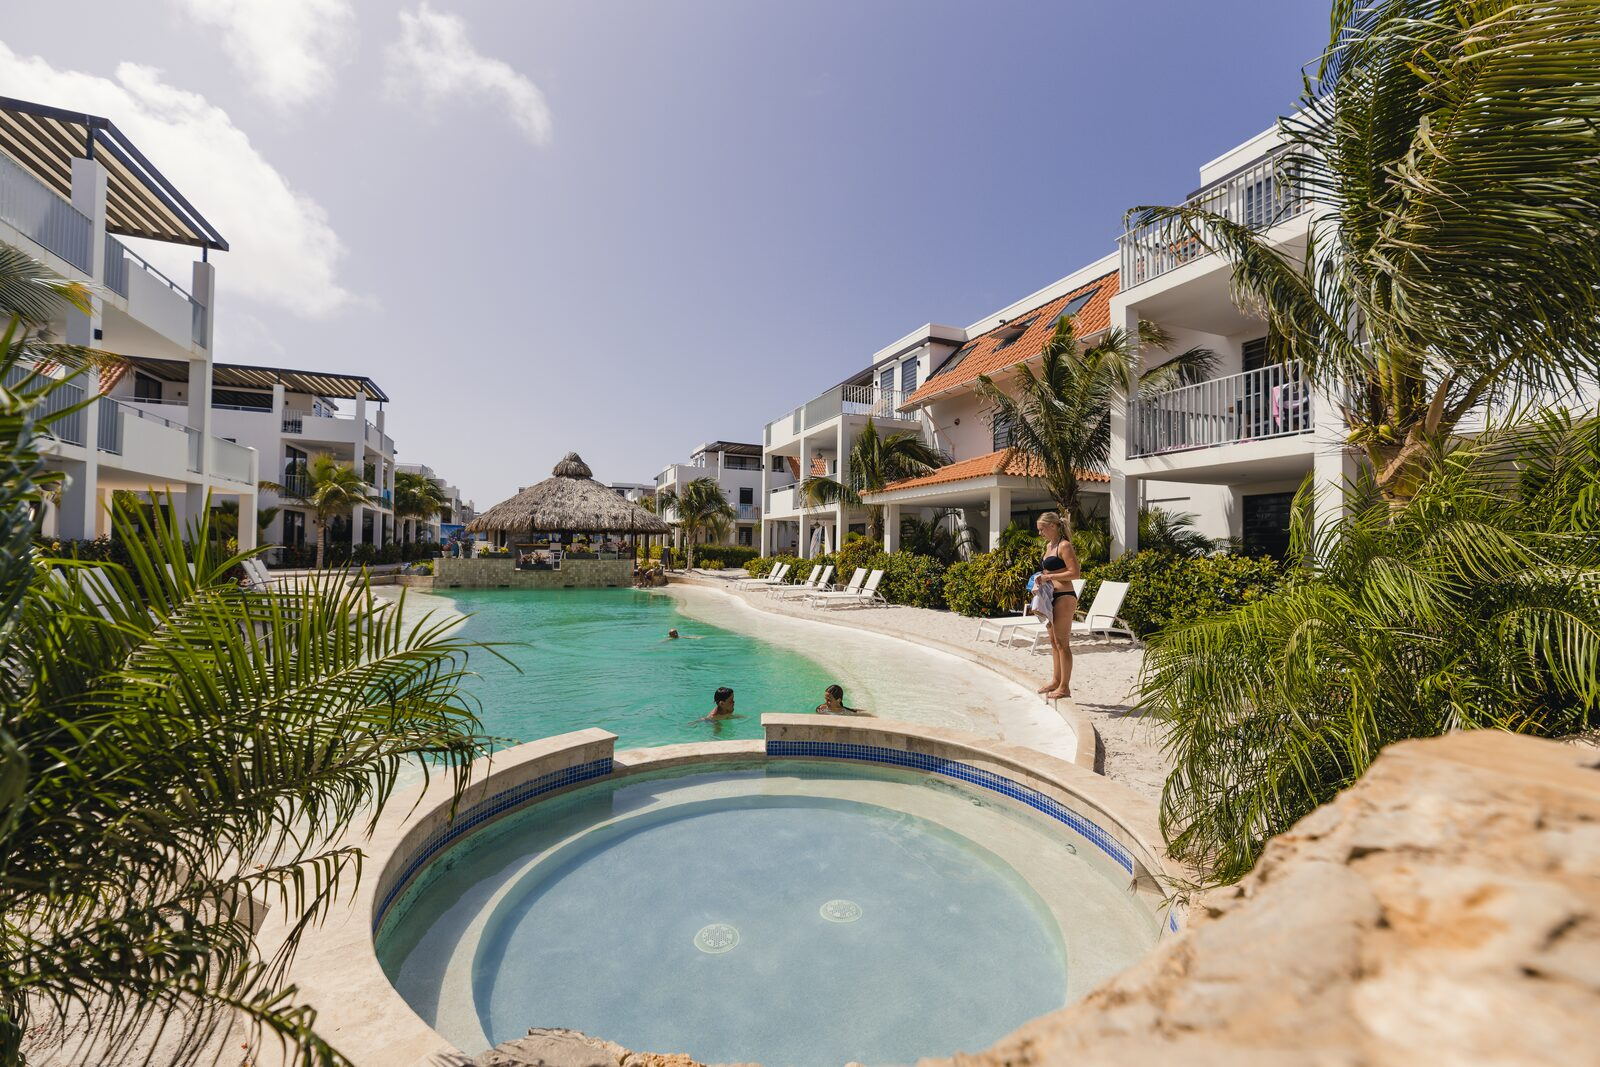 Piscina del Resort Bonaire